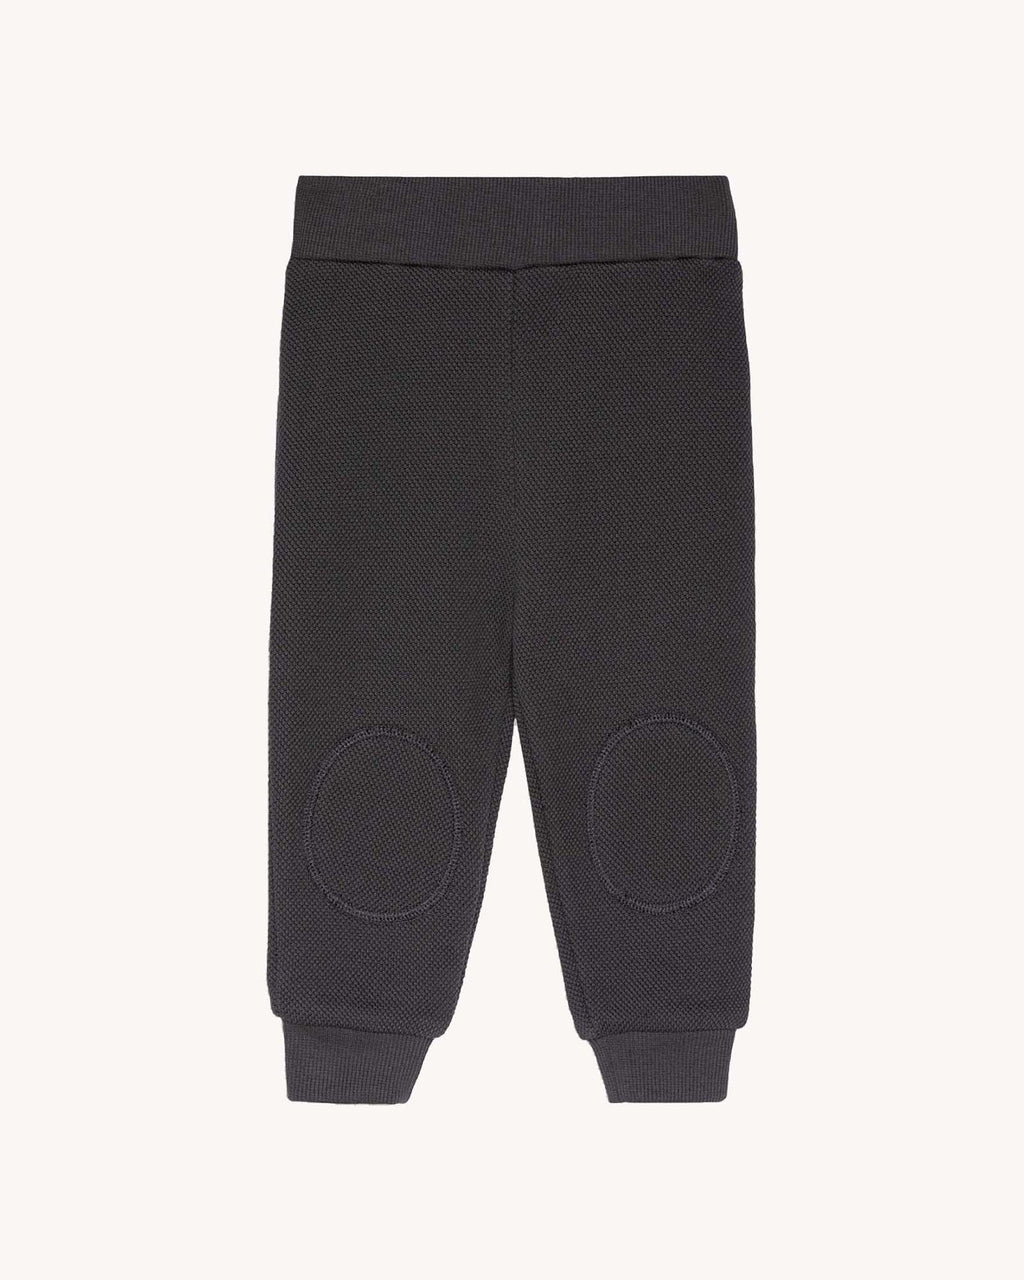 variant_2 | EN Dark Grey Sweatpants for Kids and Baby with pads on knees | DE  Dunkle Grau Anthrazit Hose mit Patches am Knie für Baby und Kinder